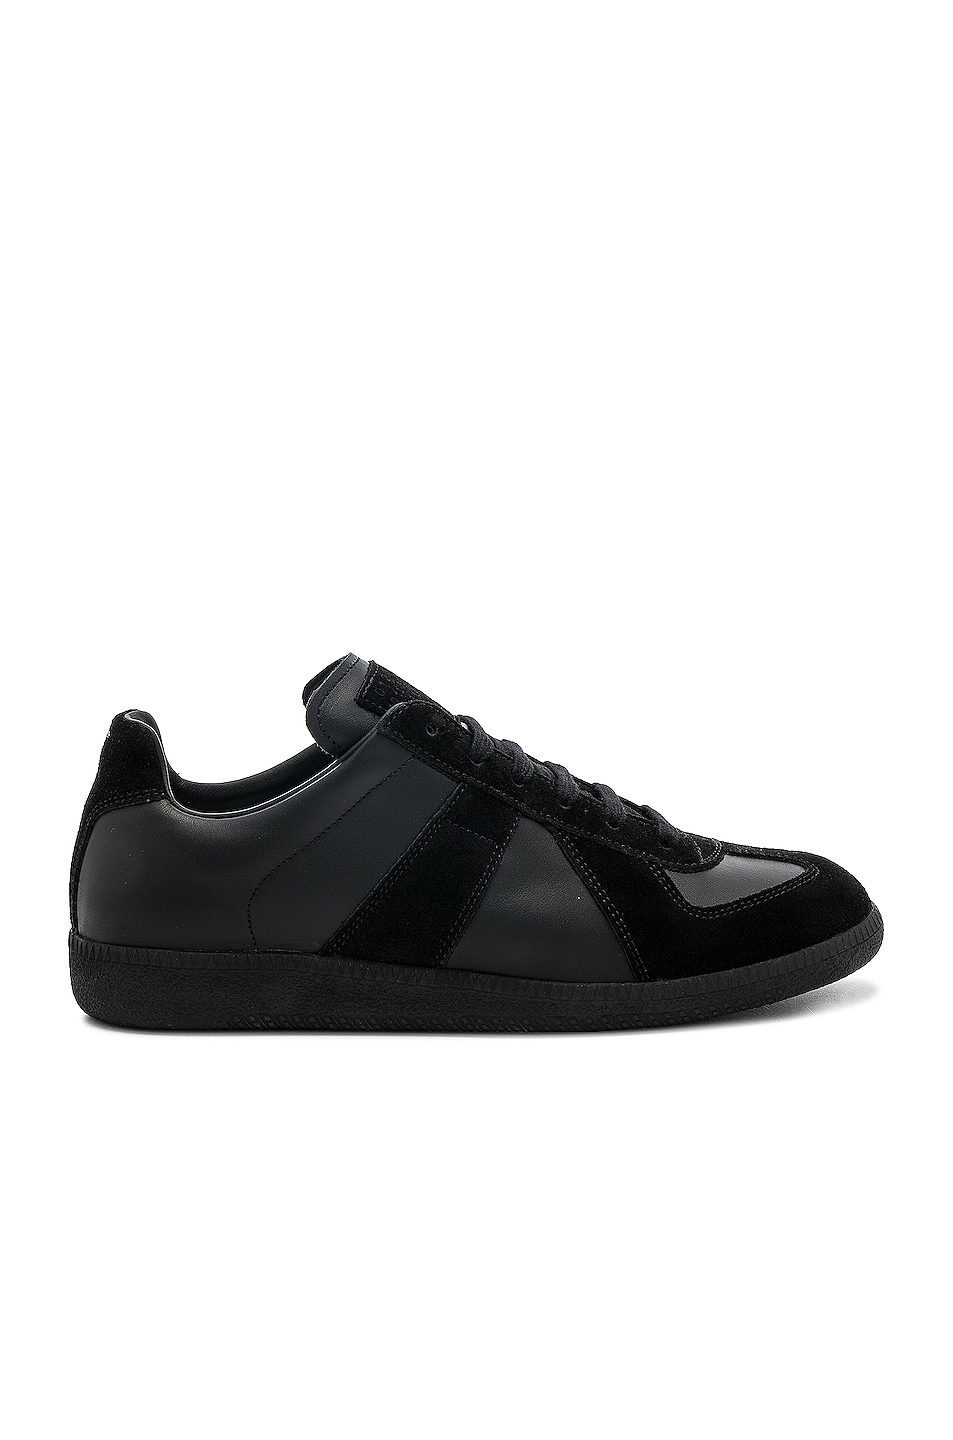 Image 1 of Maison Margiela Soft Leather & Velour Replica Sneakers in Black